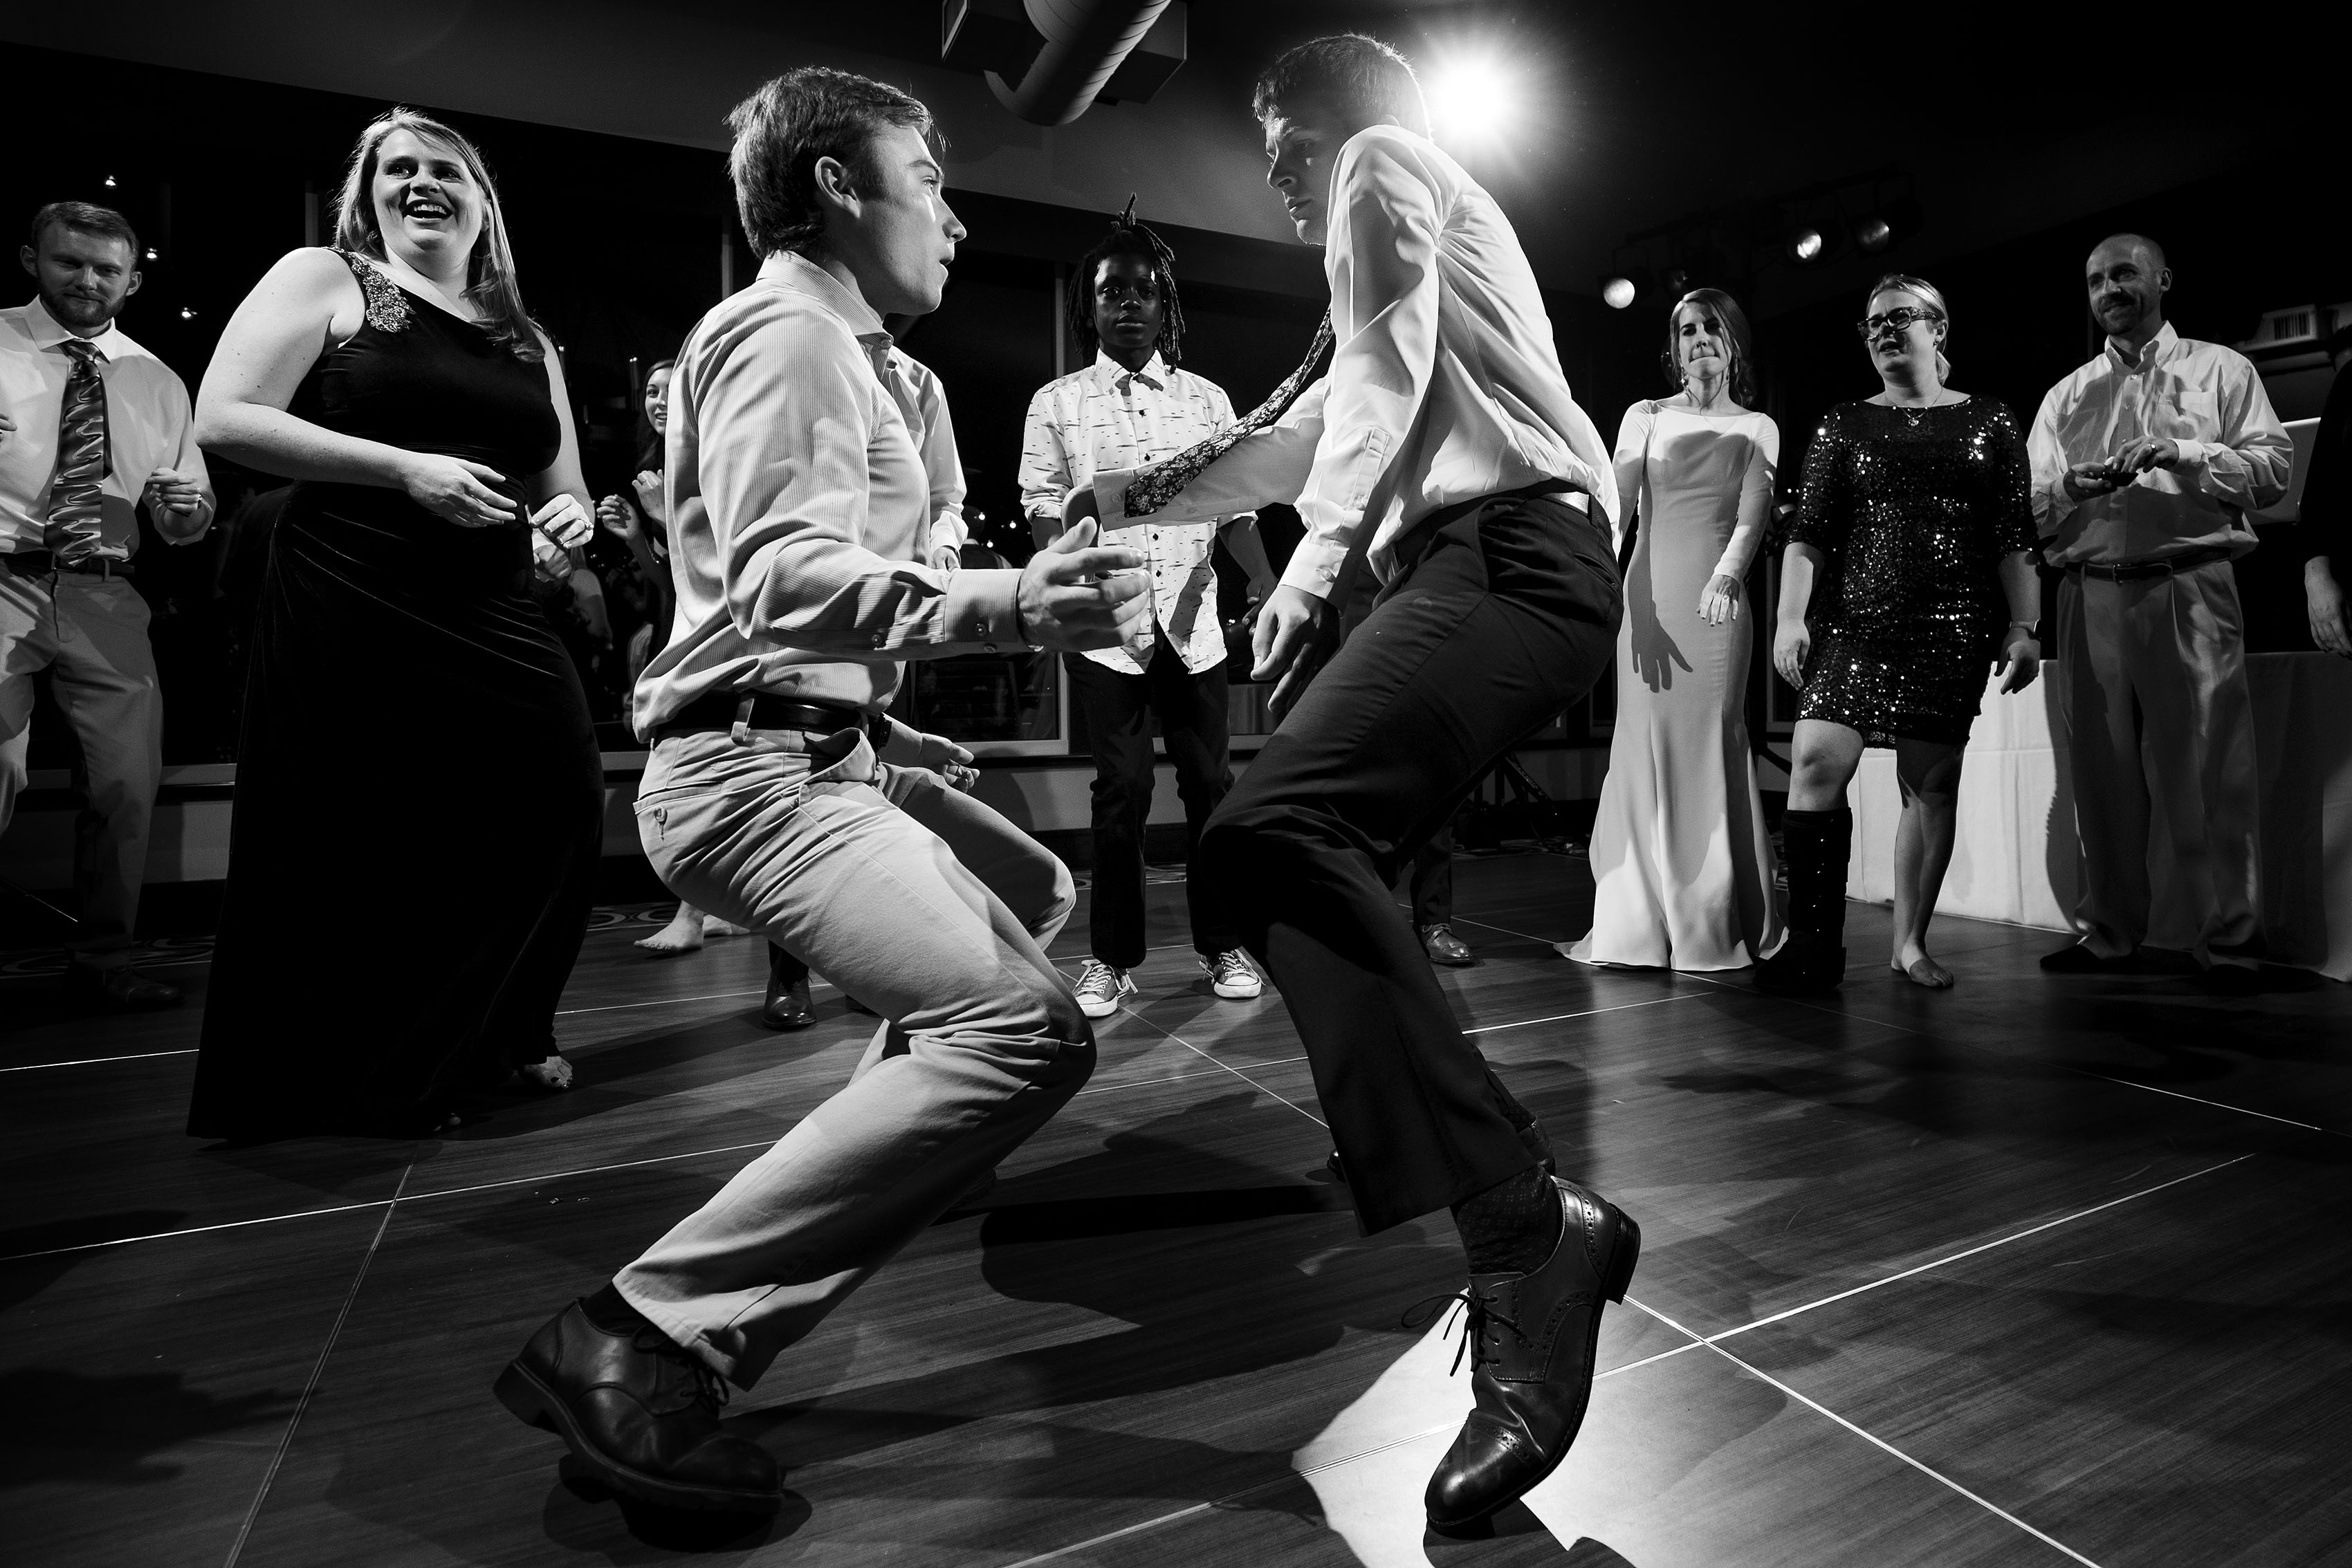 Guests dance at a wedding at The Vista at Applewood Golf Course